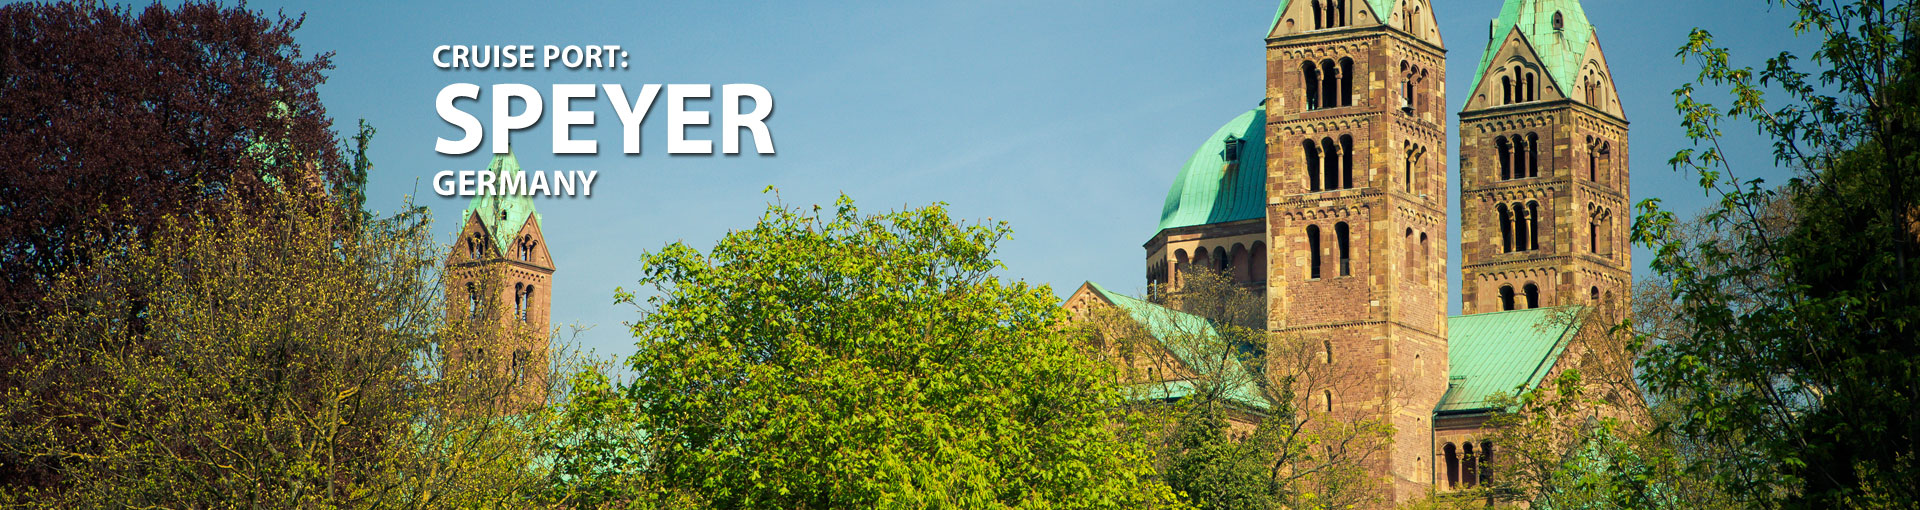 Cruises to Speyer, Germany